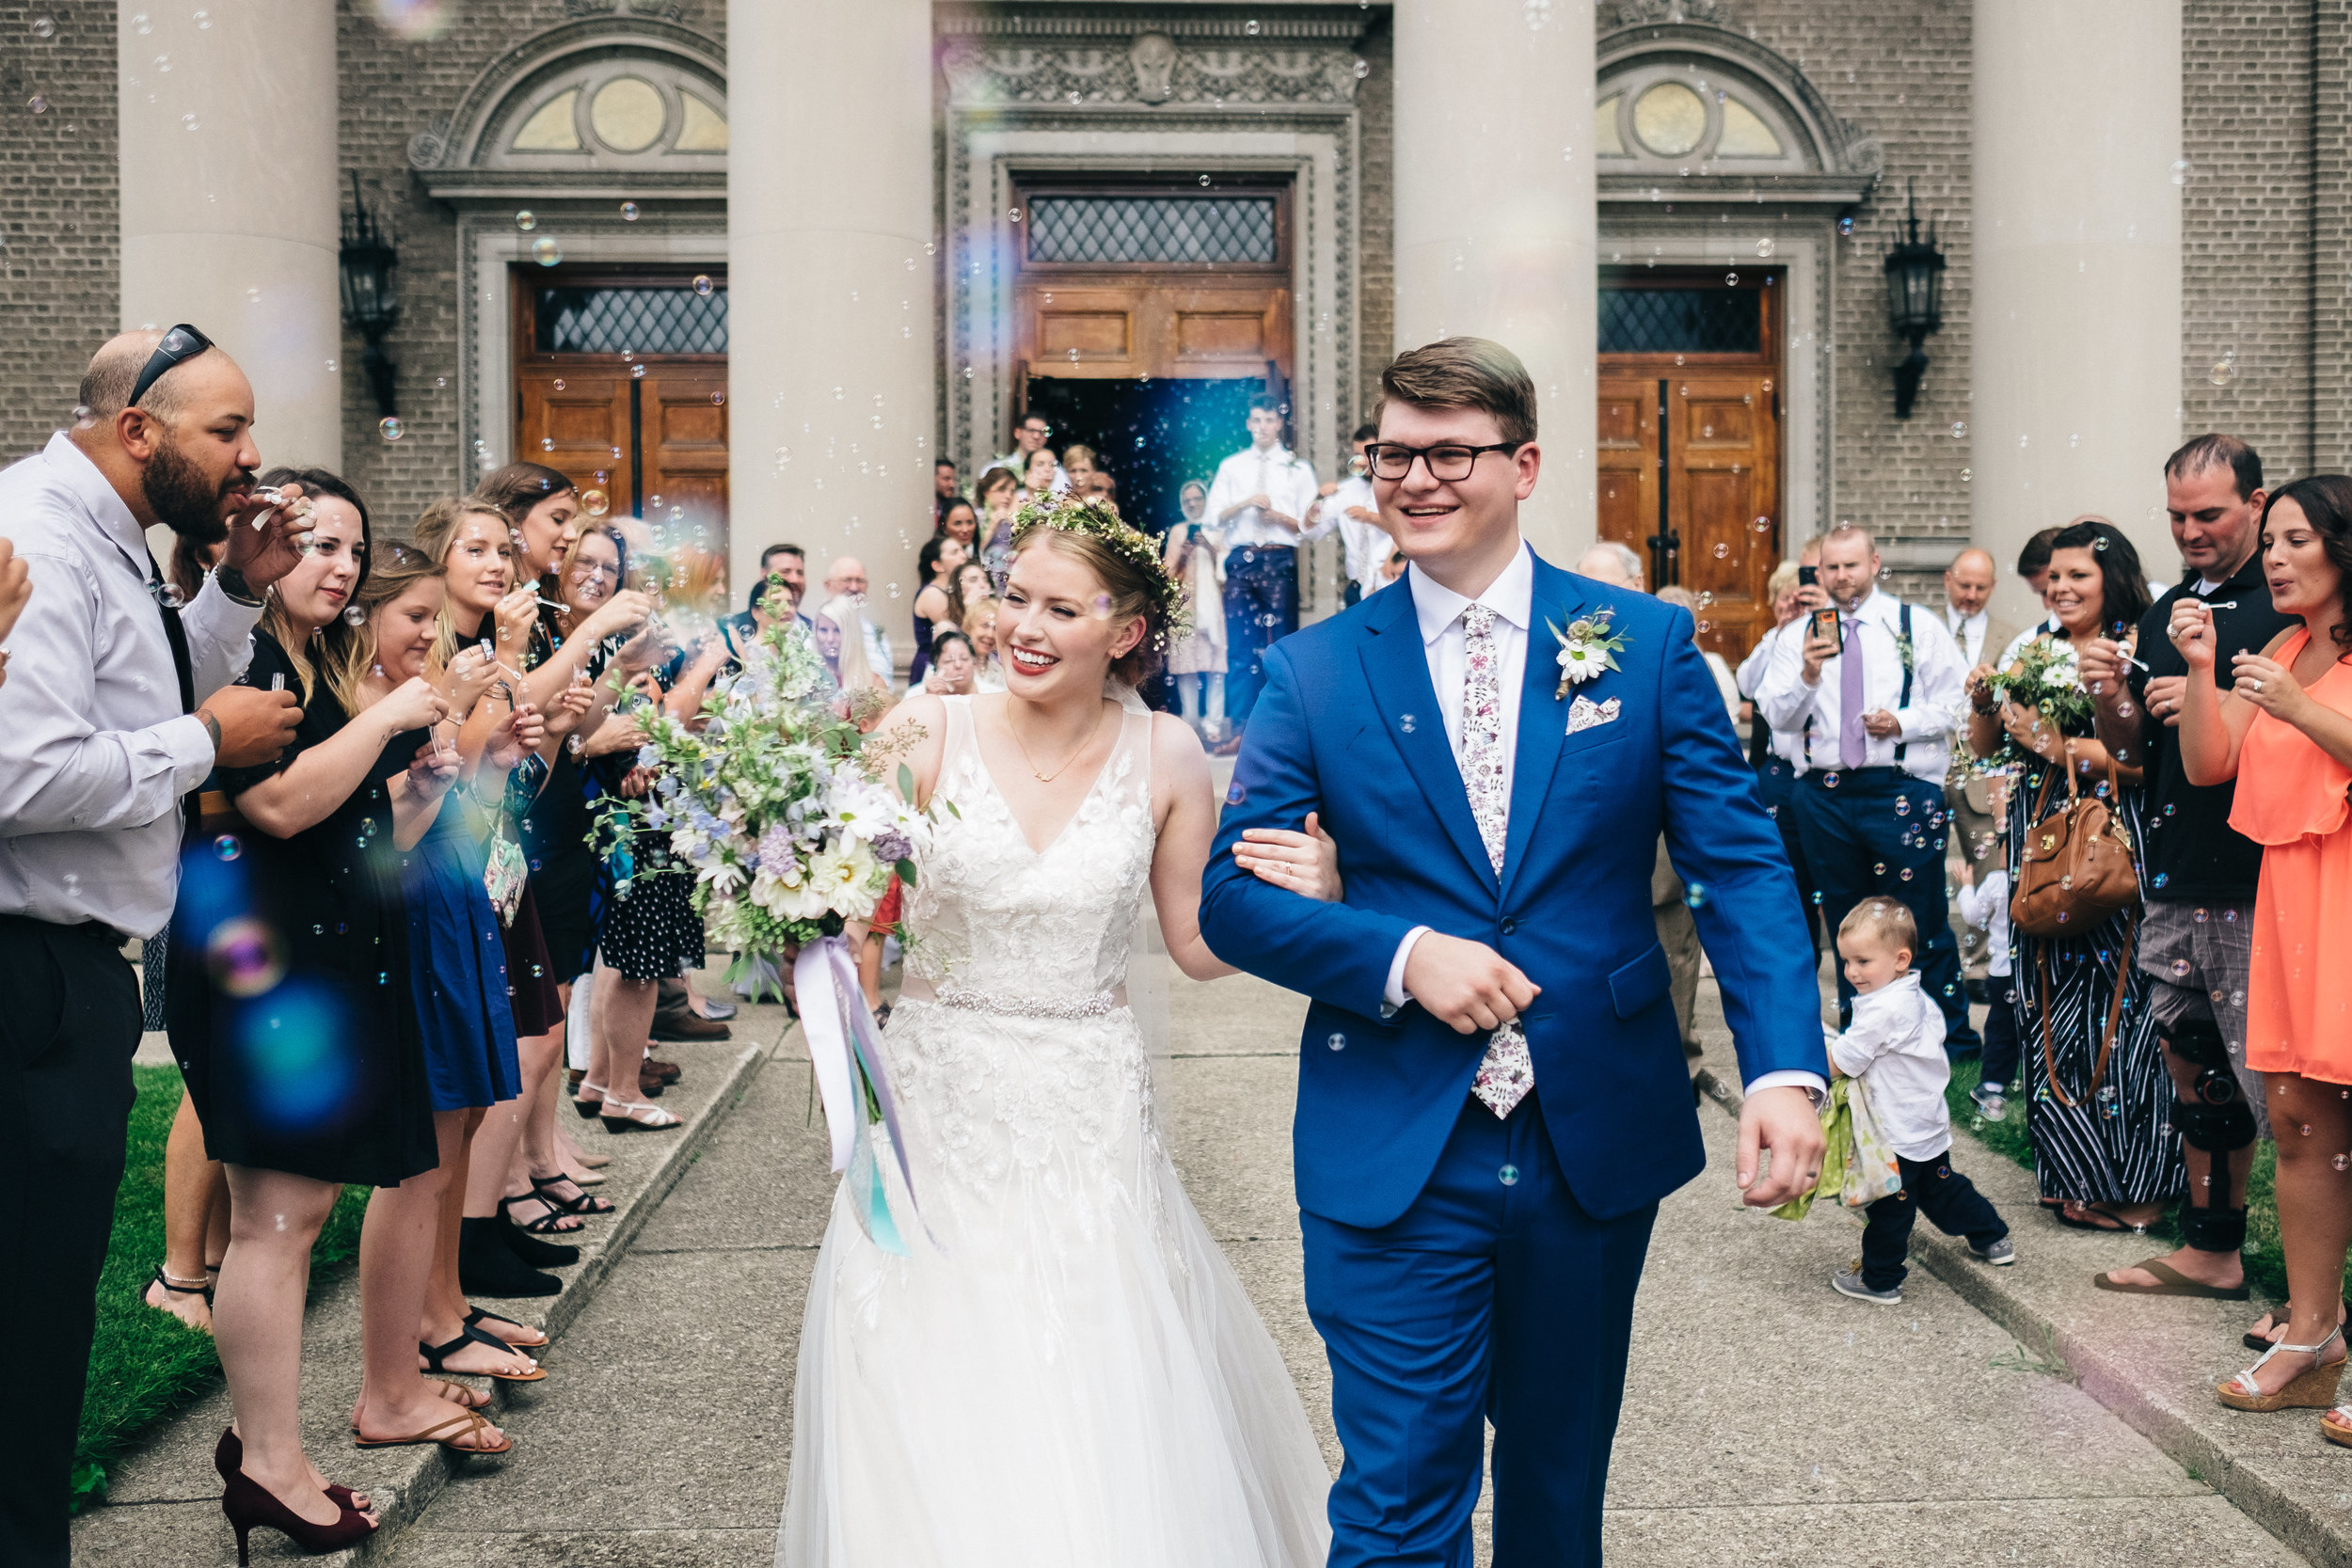 Grand exit from wedding at First Congregational Church